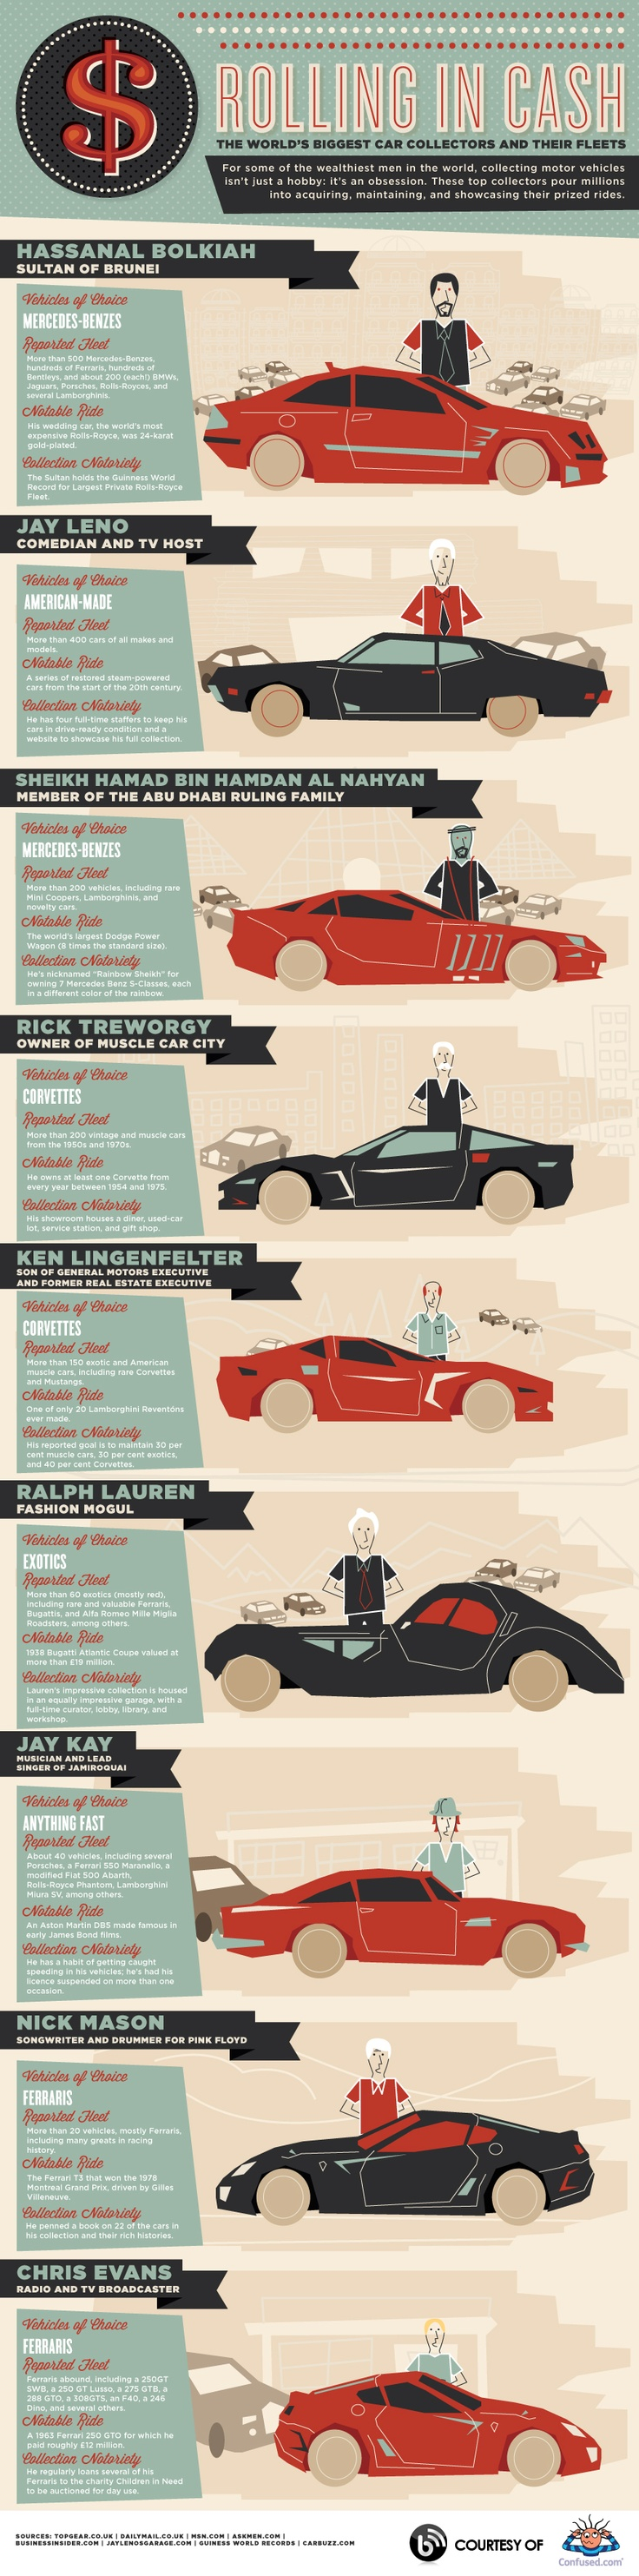 55 best Infographics - Car images on Pinterest | Info graphics ...